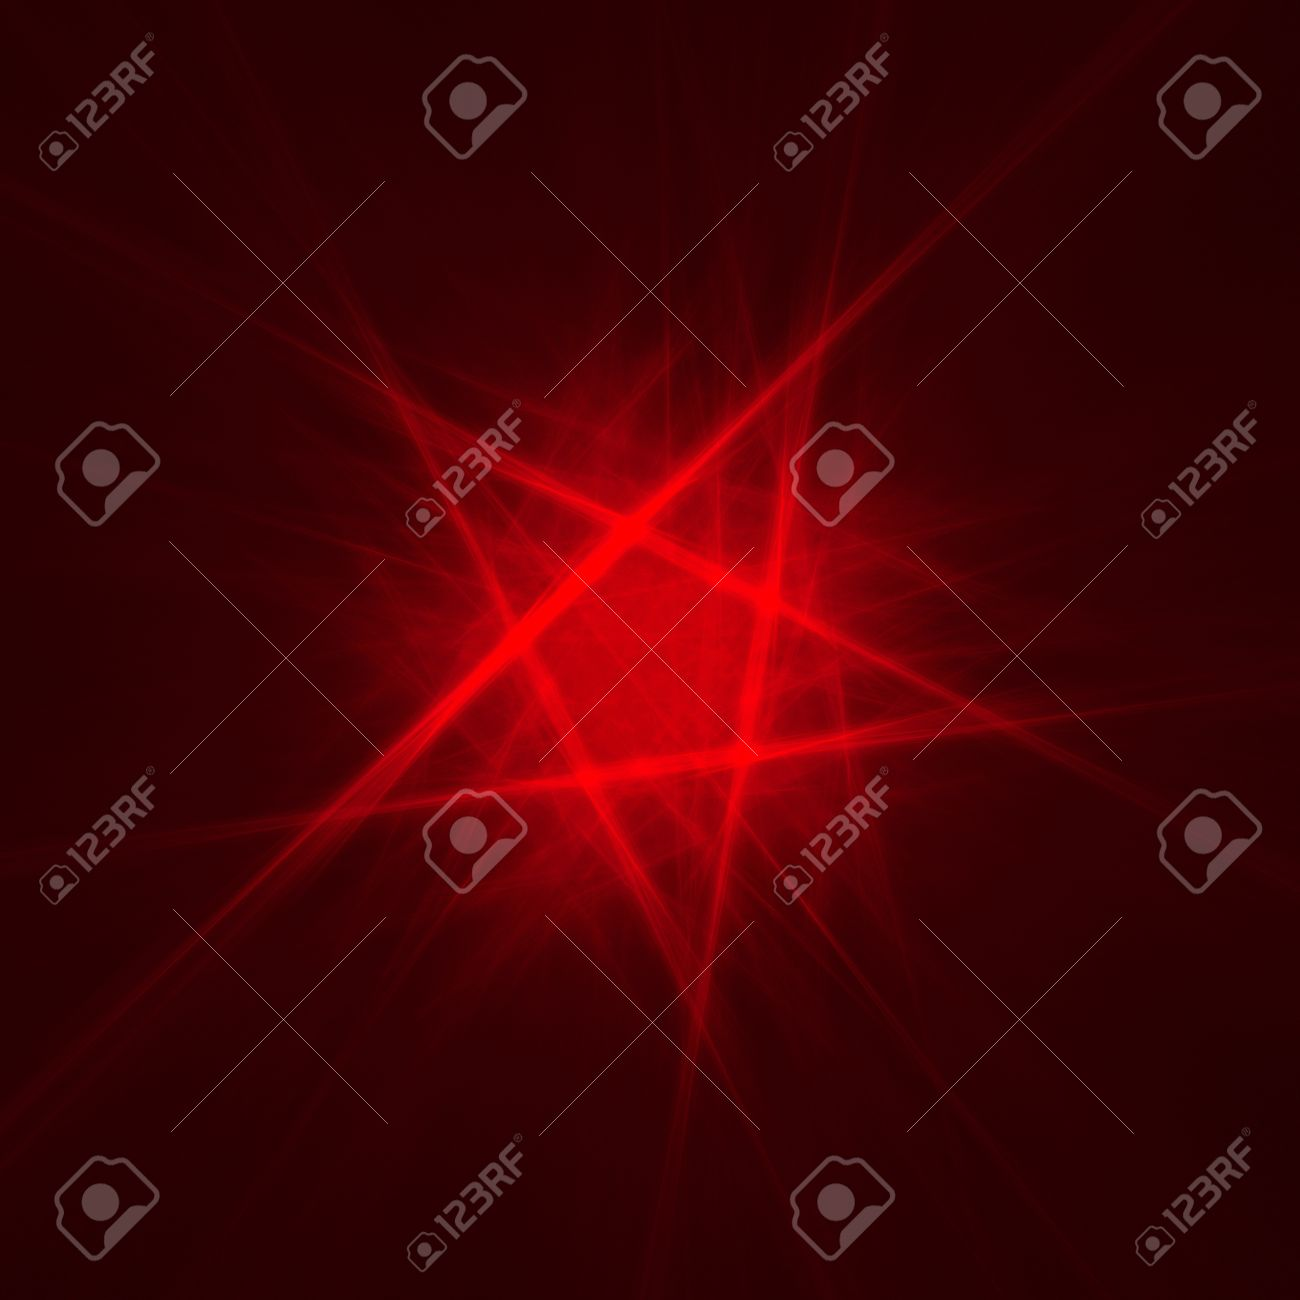 abstract pentagon background on dark  fractal rendered Stock Photo - 16218596